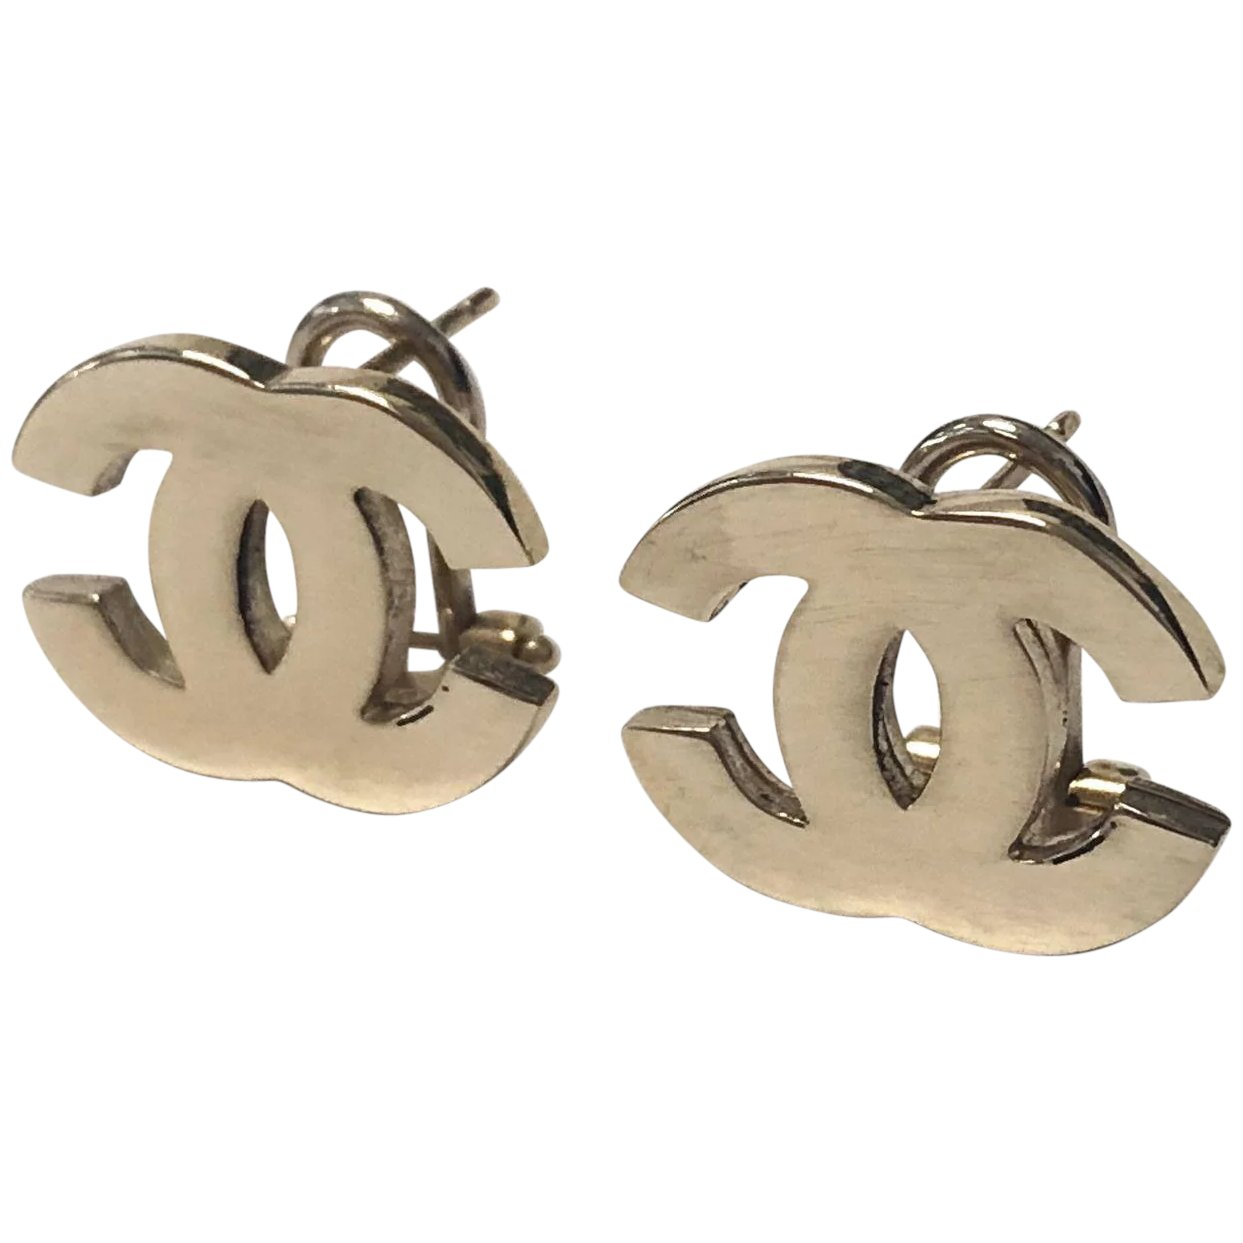 Vintage Reproduction Coco Chanel Earring Studs 14k Yellow Gold